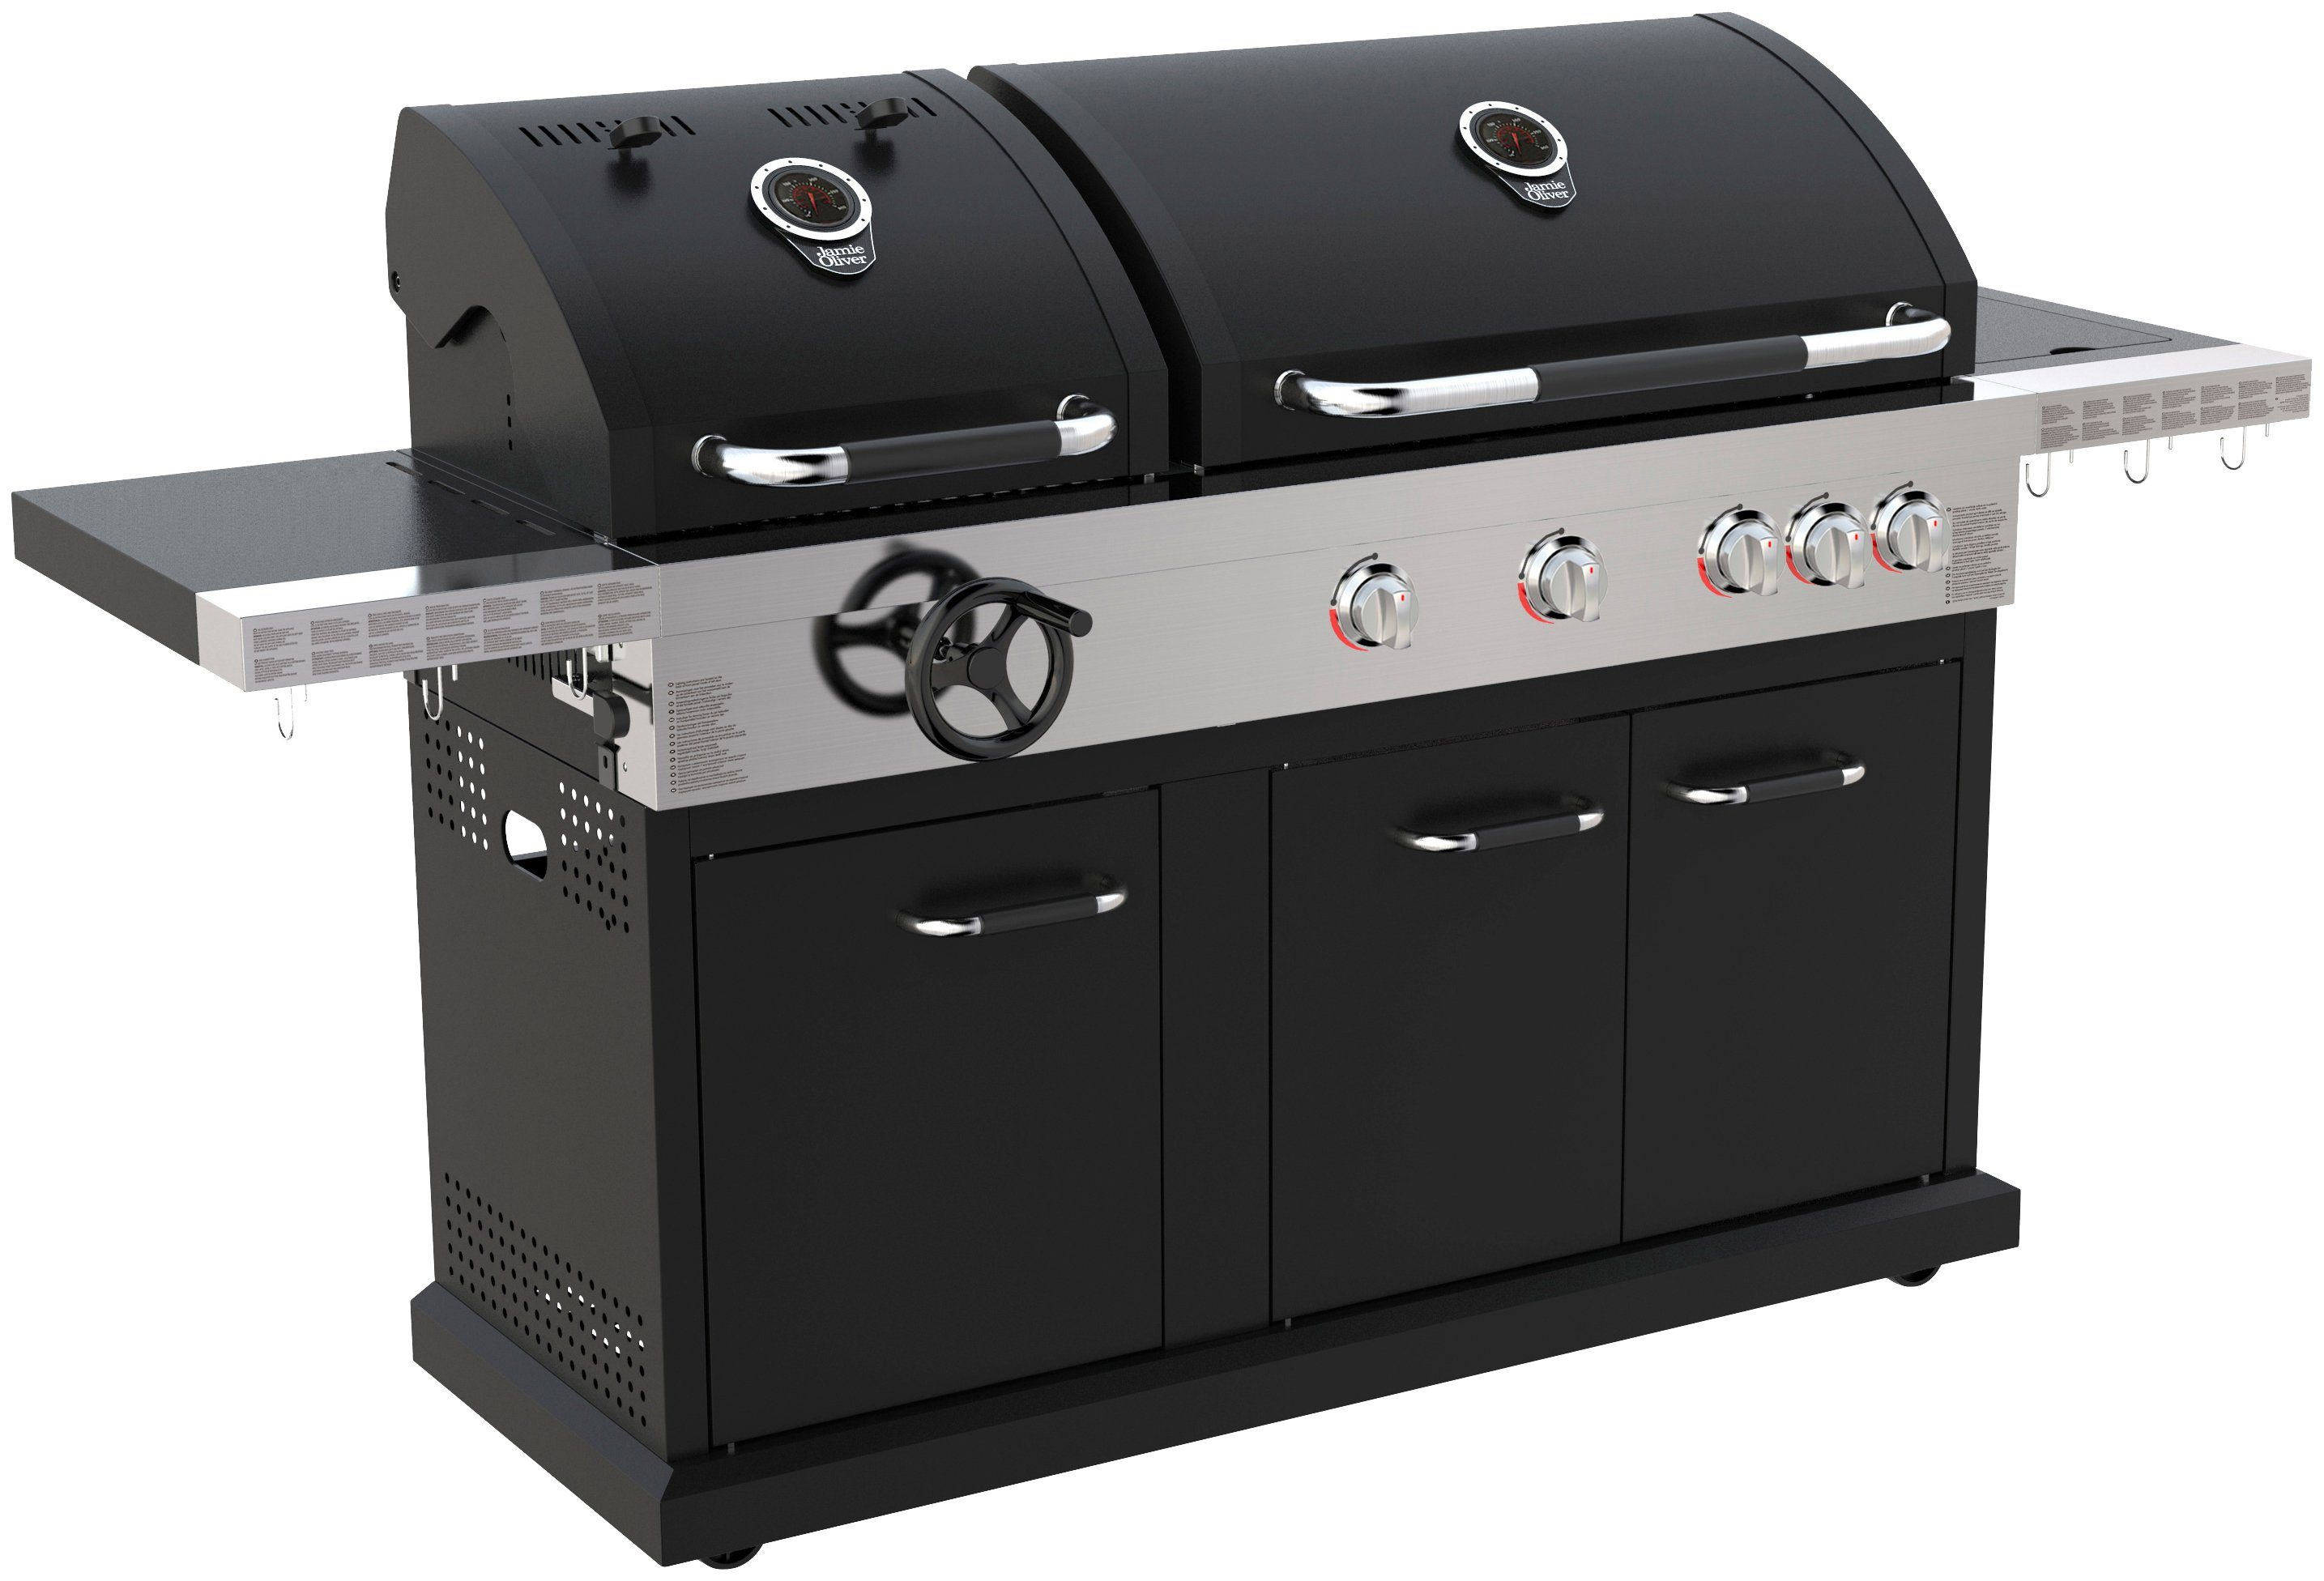 Gas Holzkohlegrill Kombination : Jamie oliver gasgrill bbq dual fuel pro « gas und